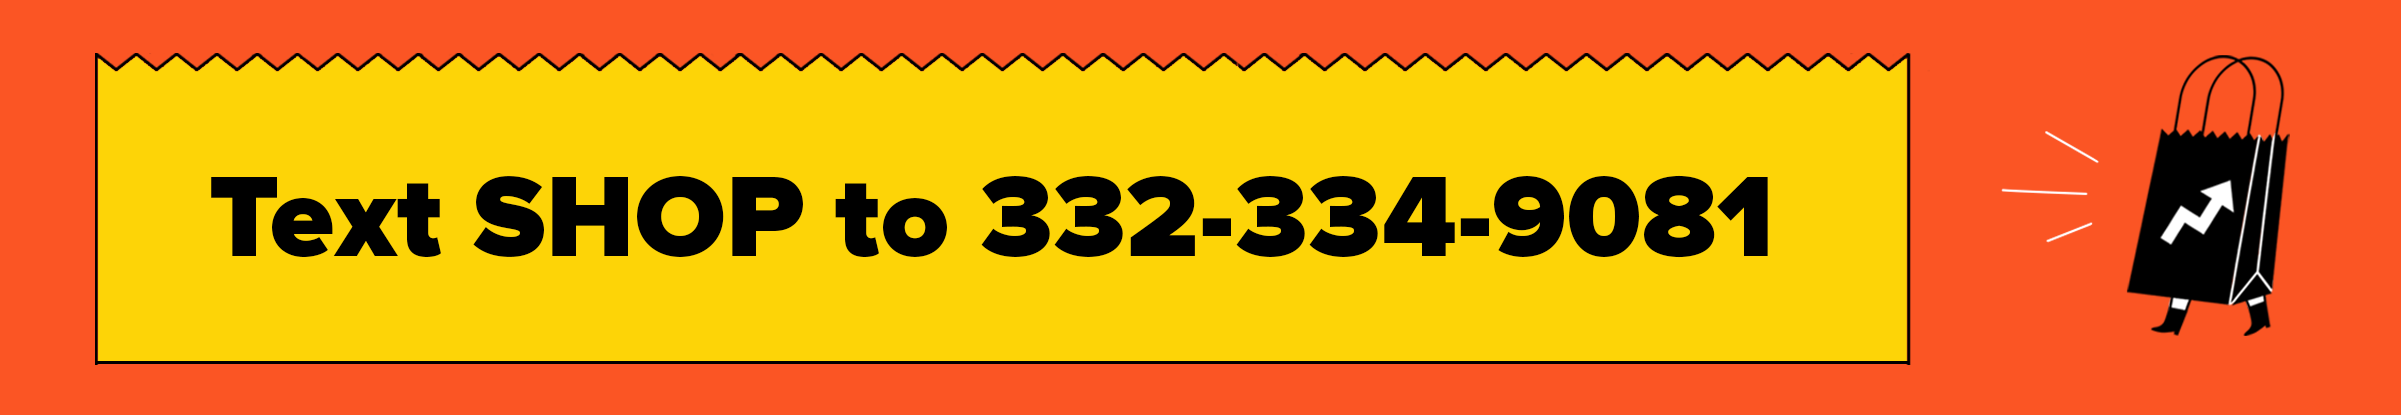 the number to text for BuzzFeed Shopping recommendations, 332-334-9081